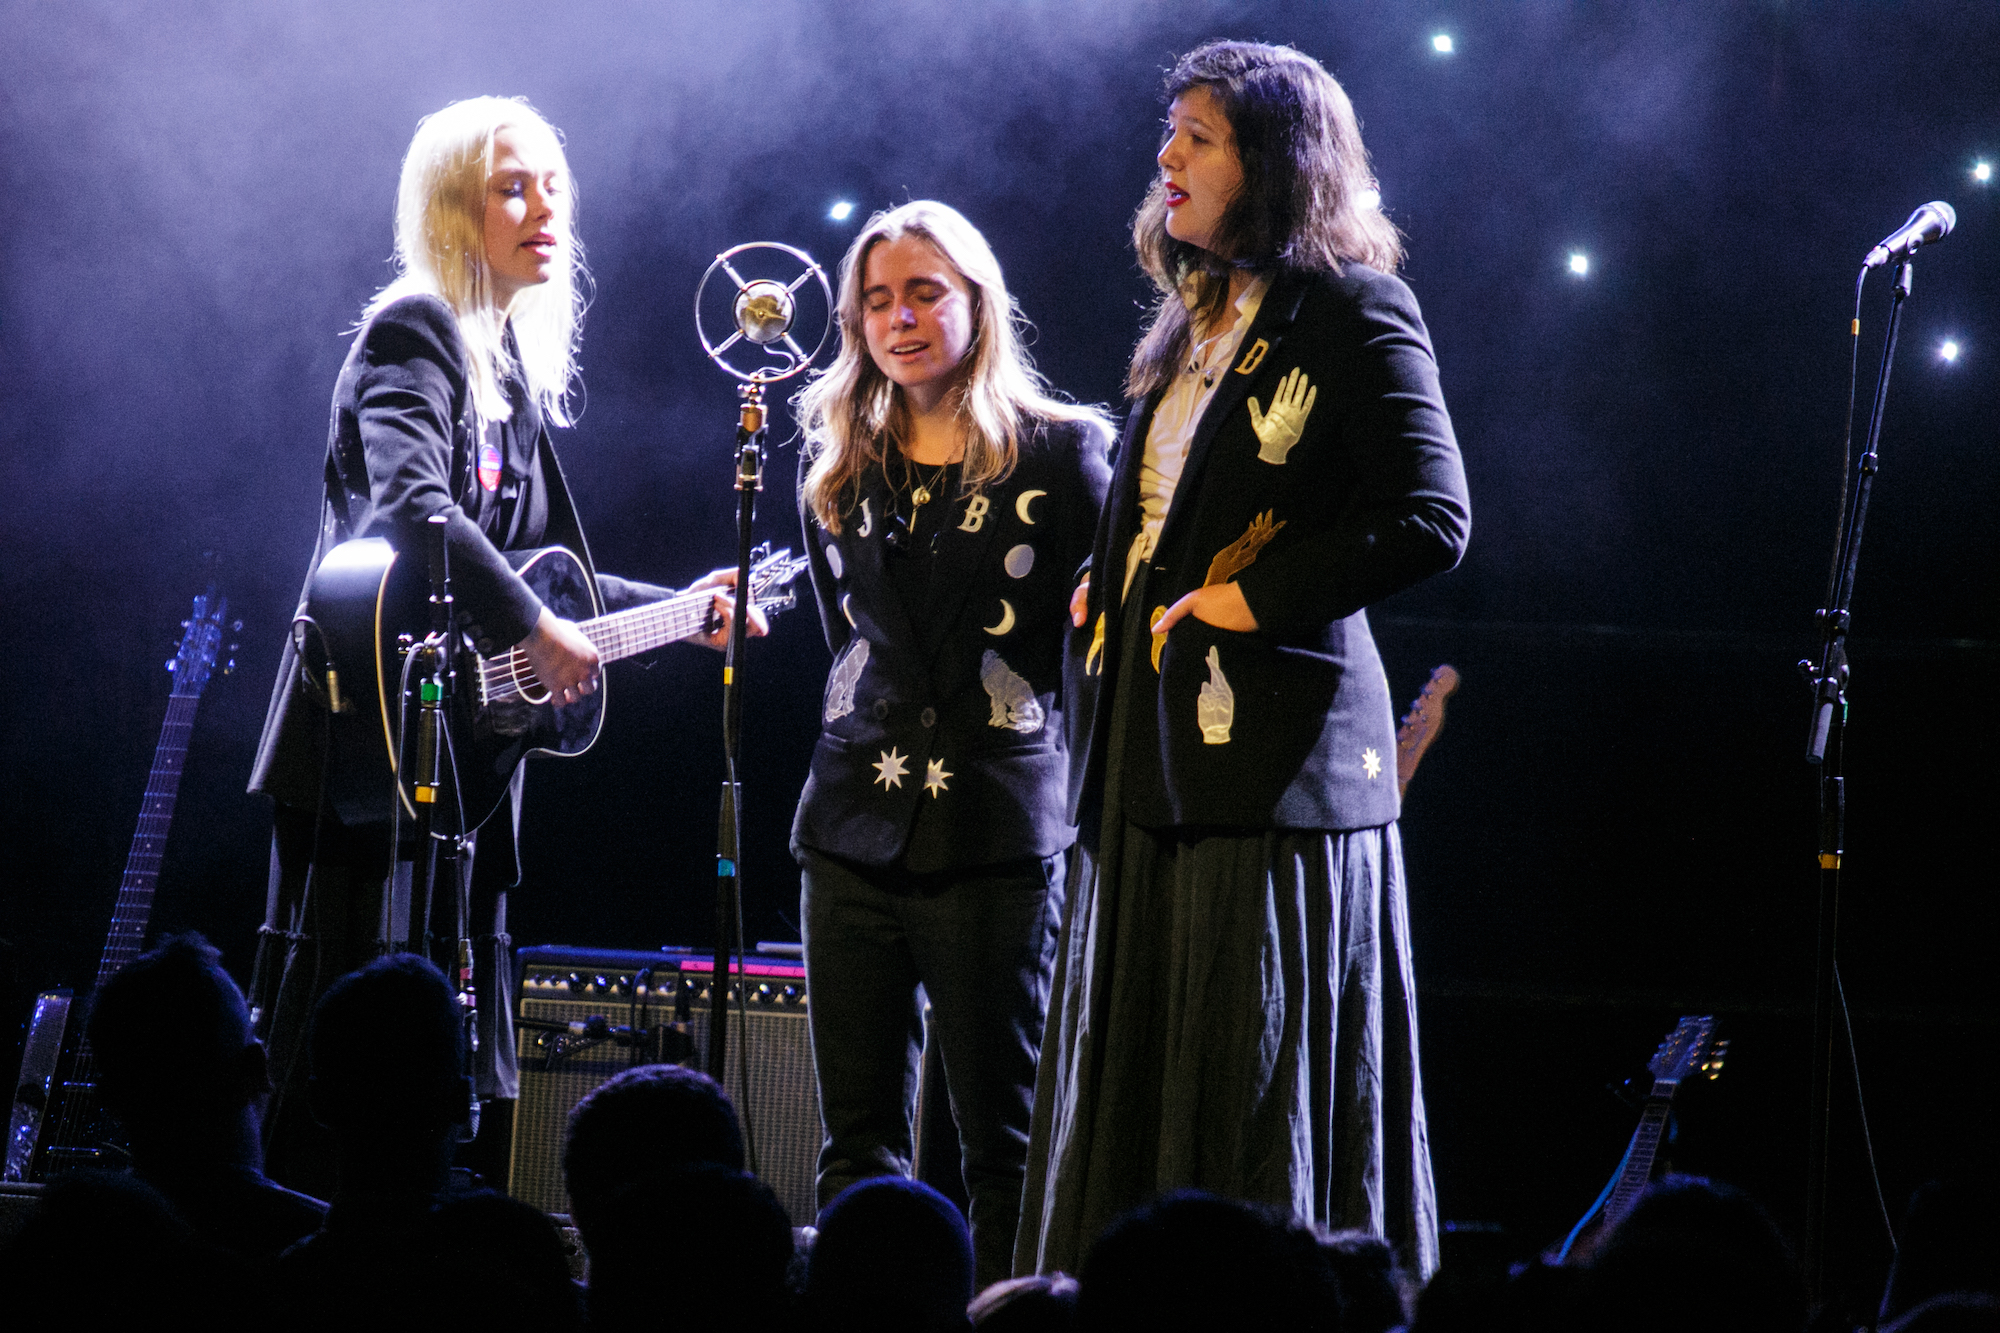 boygenius Julien Baker, Phoebe Bridgers, Lucy Dacus Live Acts of the Year 2018 Will Oliver